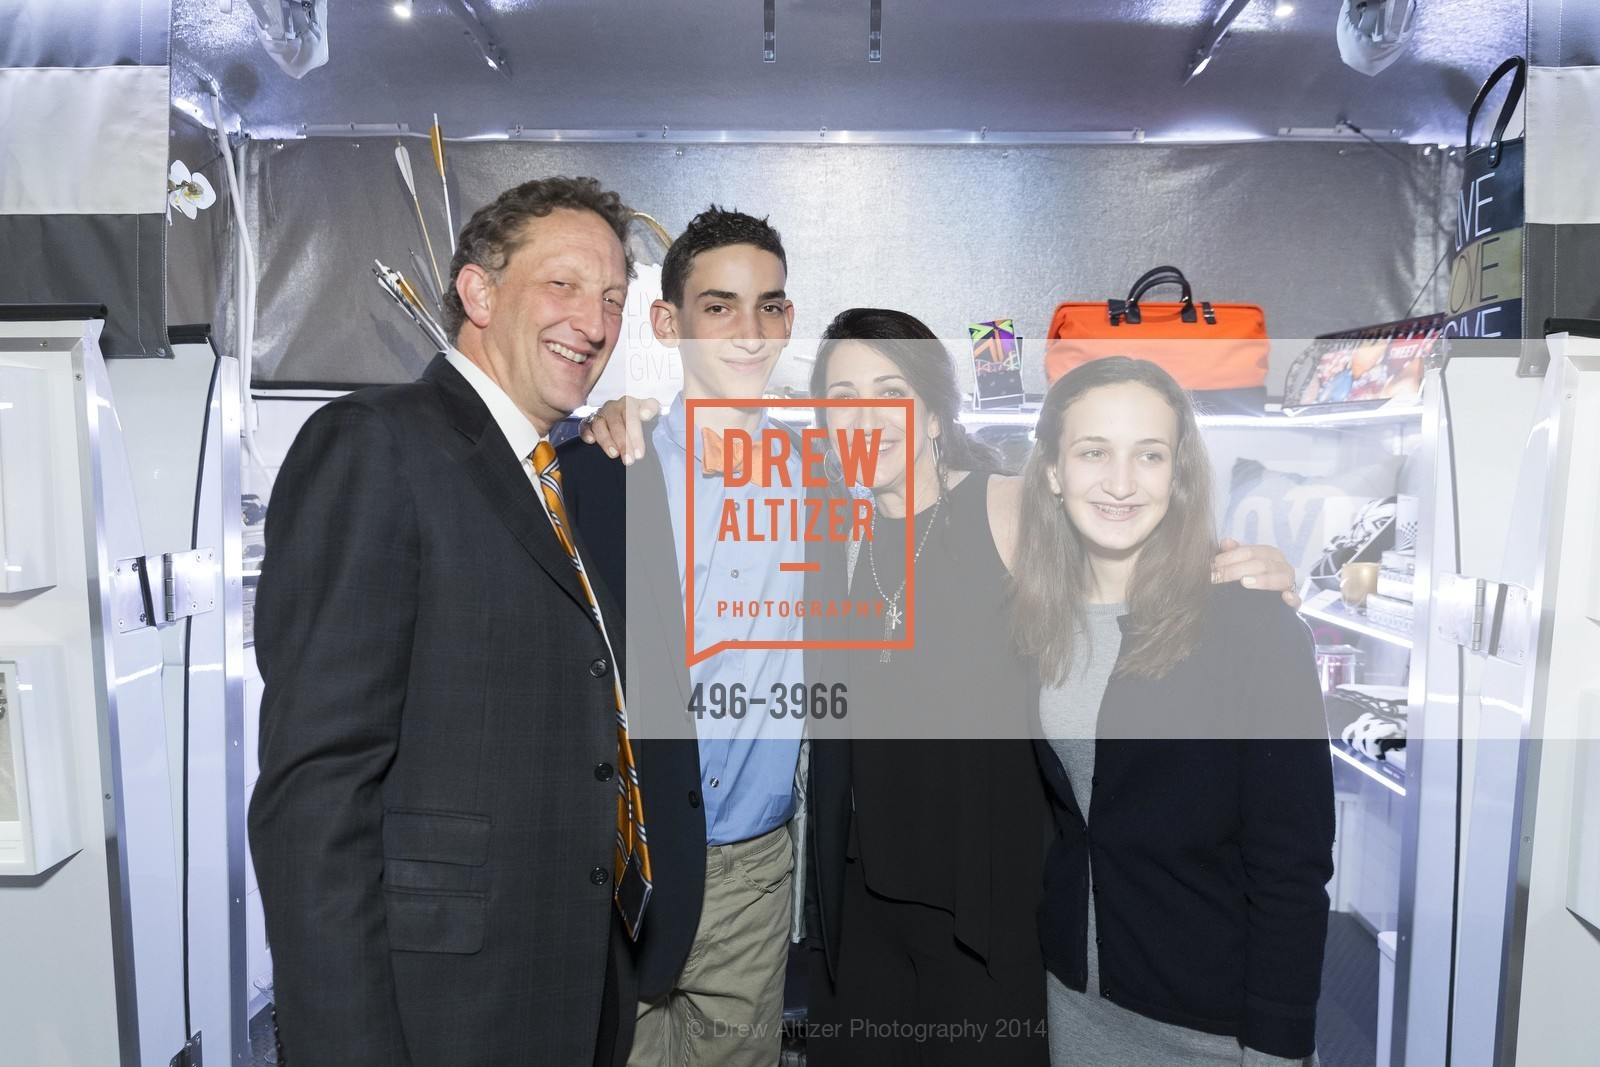 Larry Baer, Zack Baer, Pam Baer, Alana Baer, Photo #496-3966